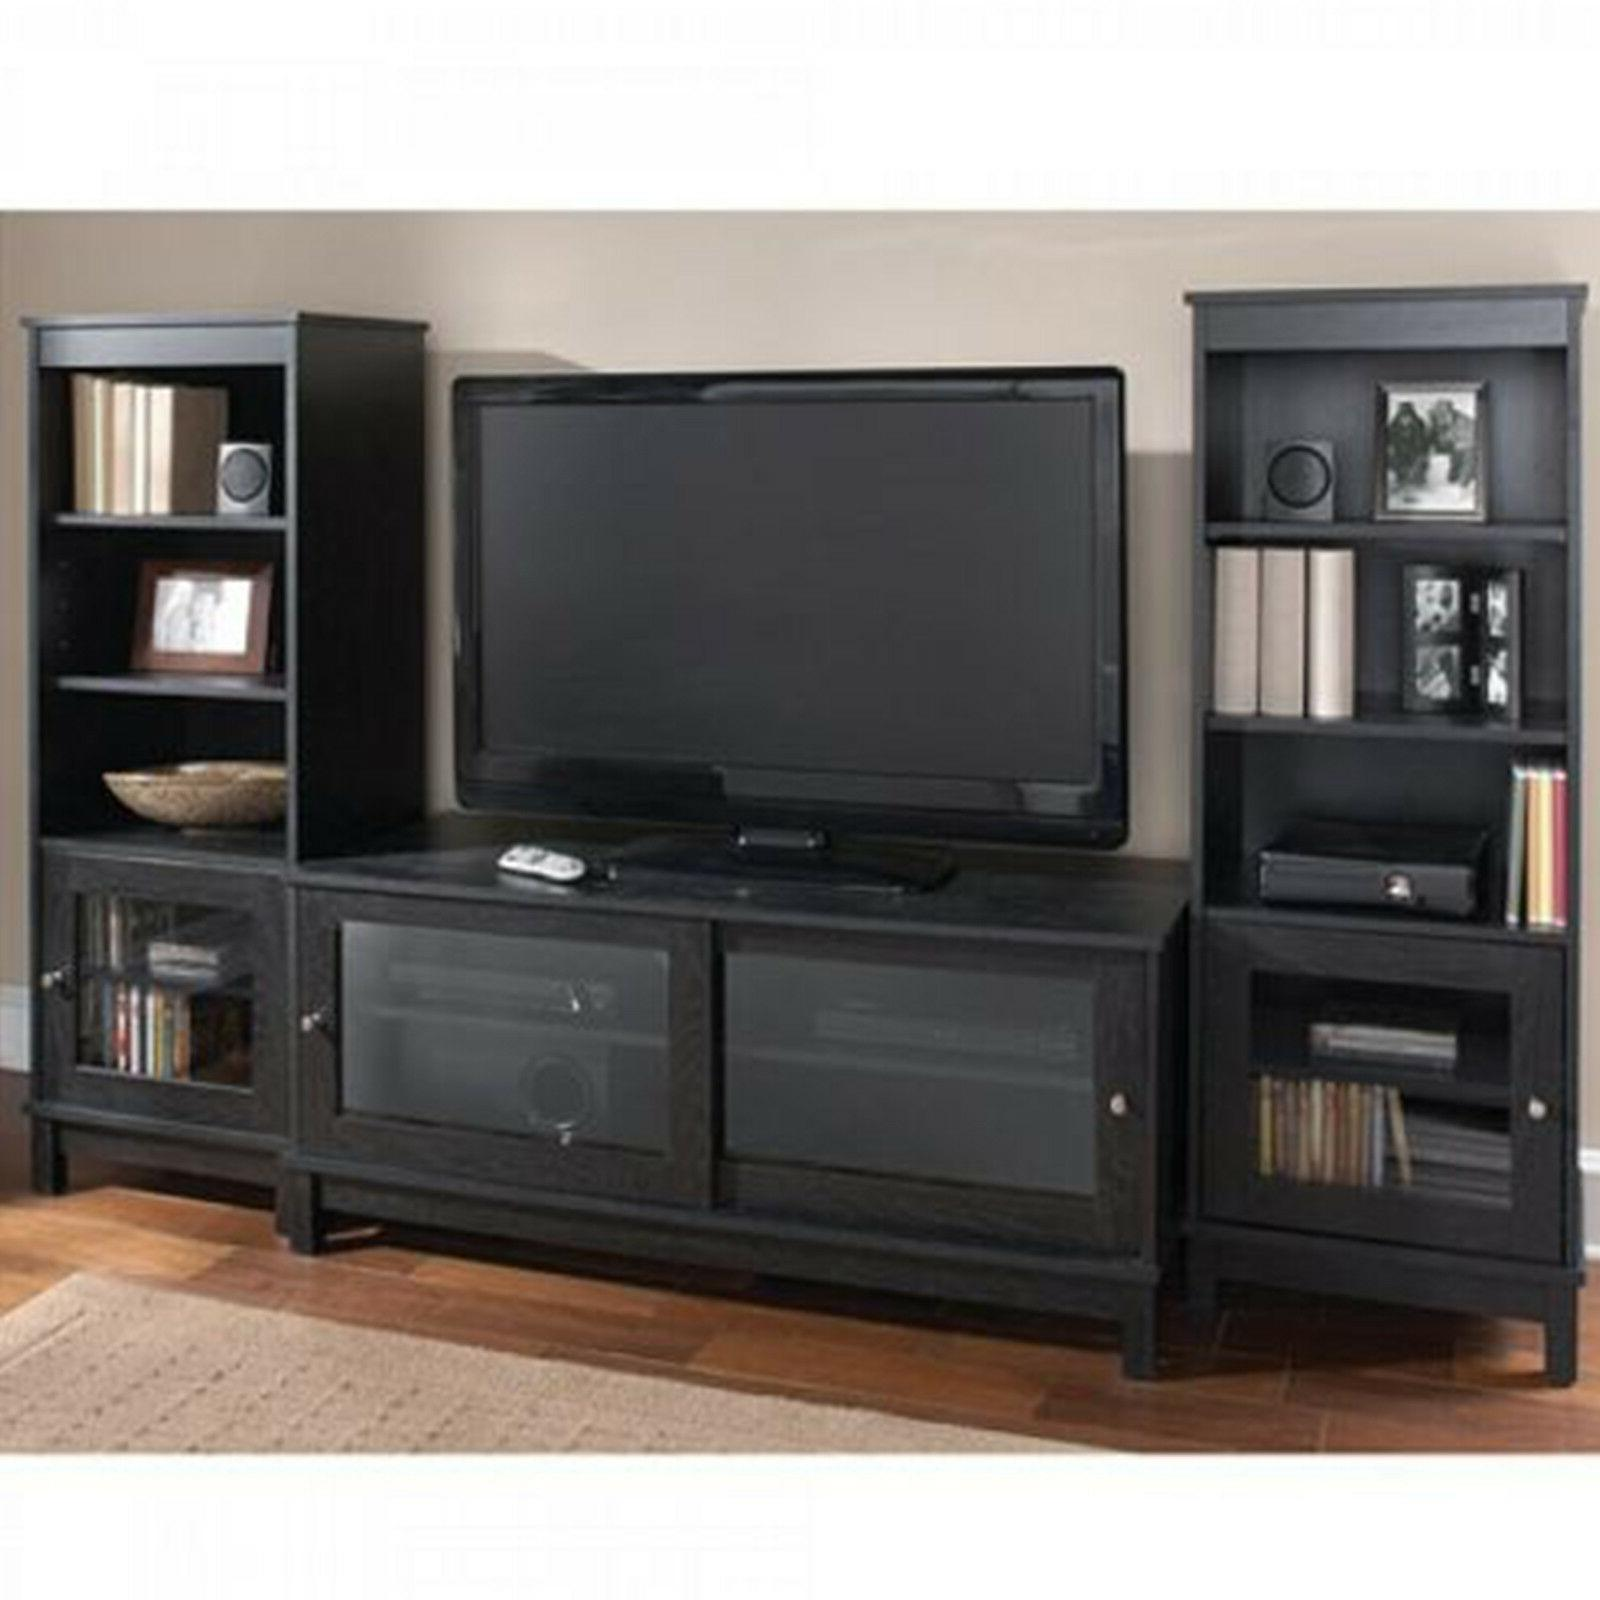 Entertainment Center TV Media Cabinet Wood Shelf Modern